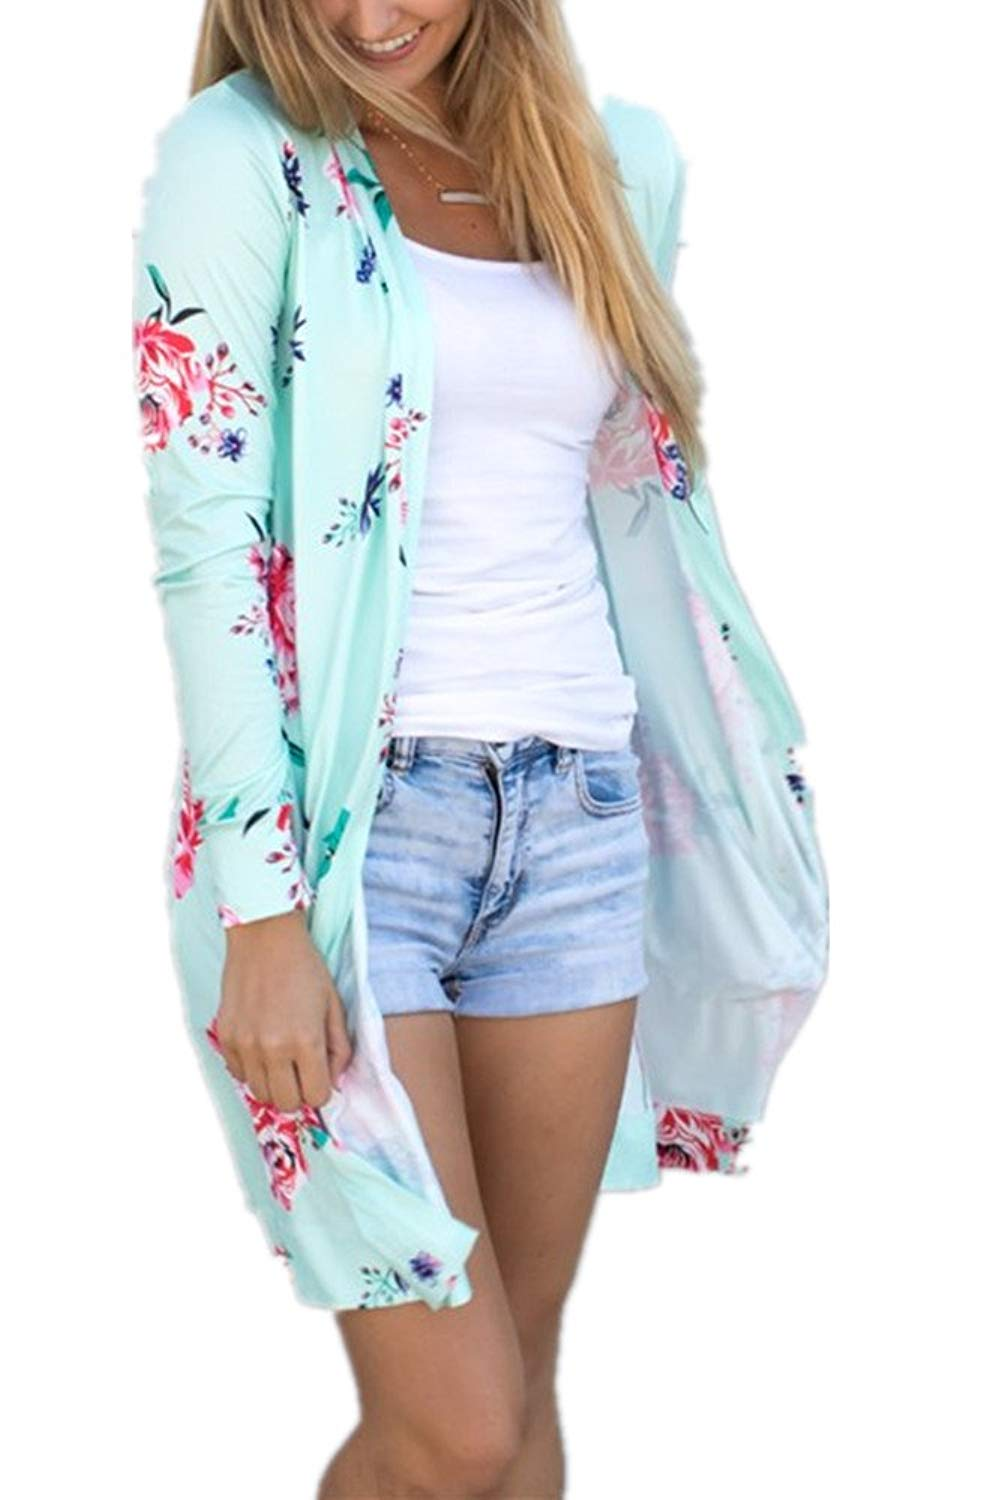 Pxmoda Womens Boho Long Sleeve Floral Print Cardigans Casual Kimono Wrap Coverup Tops Outwear